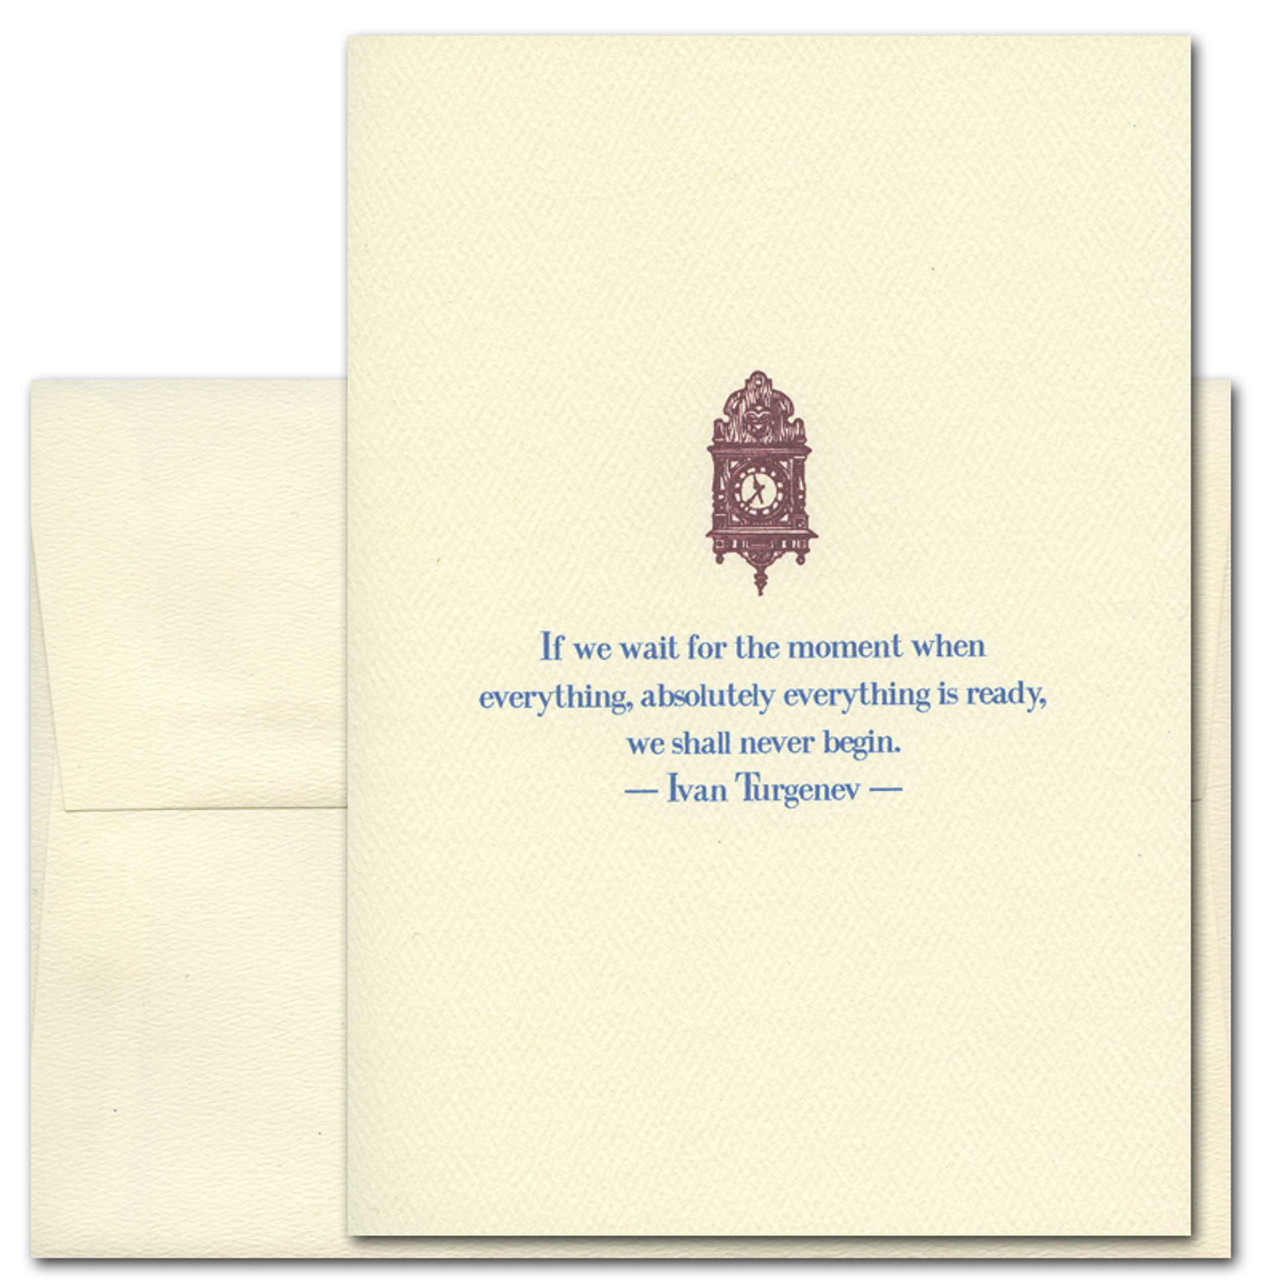 """Quotation Card """"If We Wait: Turgenev"""" Cover shows vintage illustration of a clock with a quote from Ivan Turgenev that reads """"If we wait for the moment when everything, absolutely everything is ready, we shall never begin."""""""